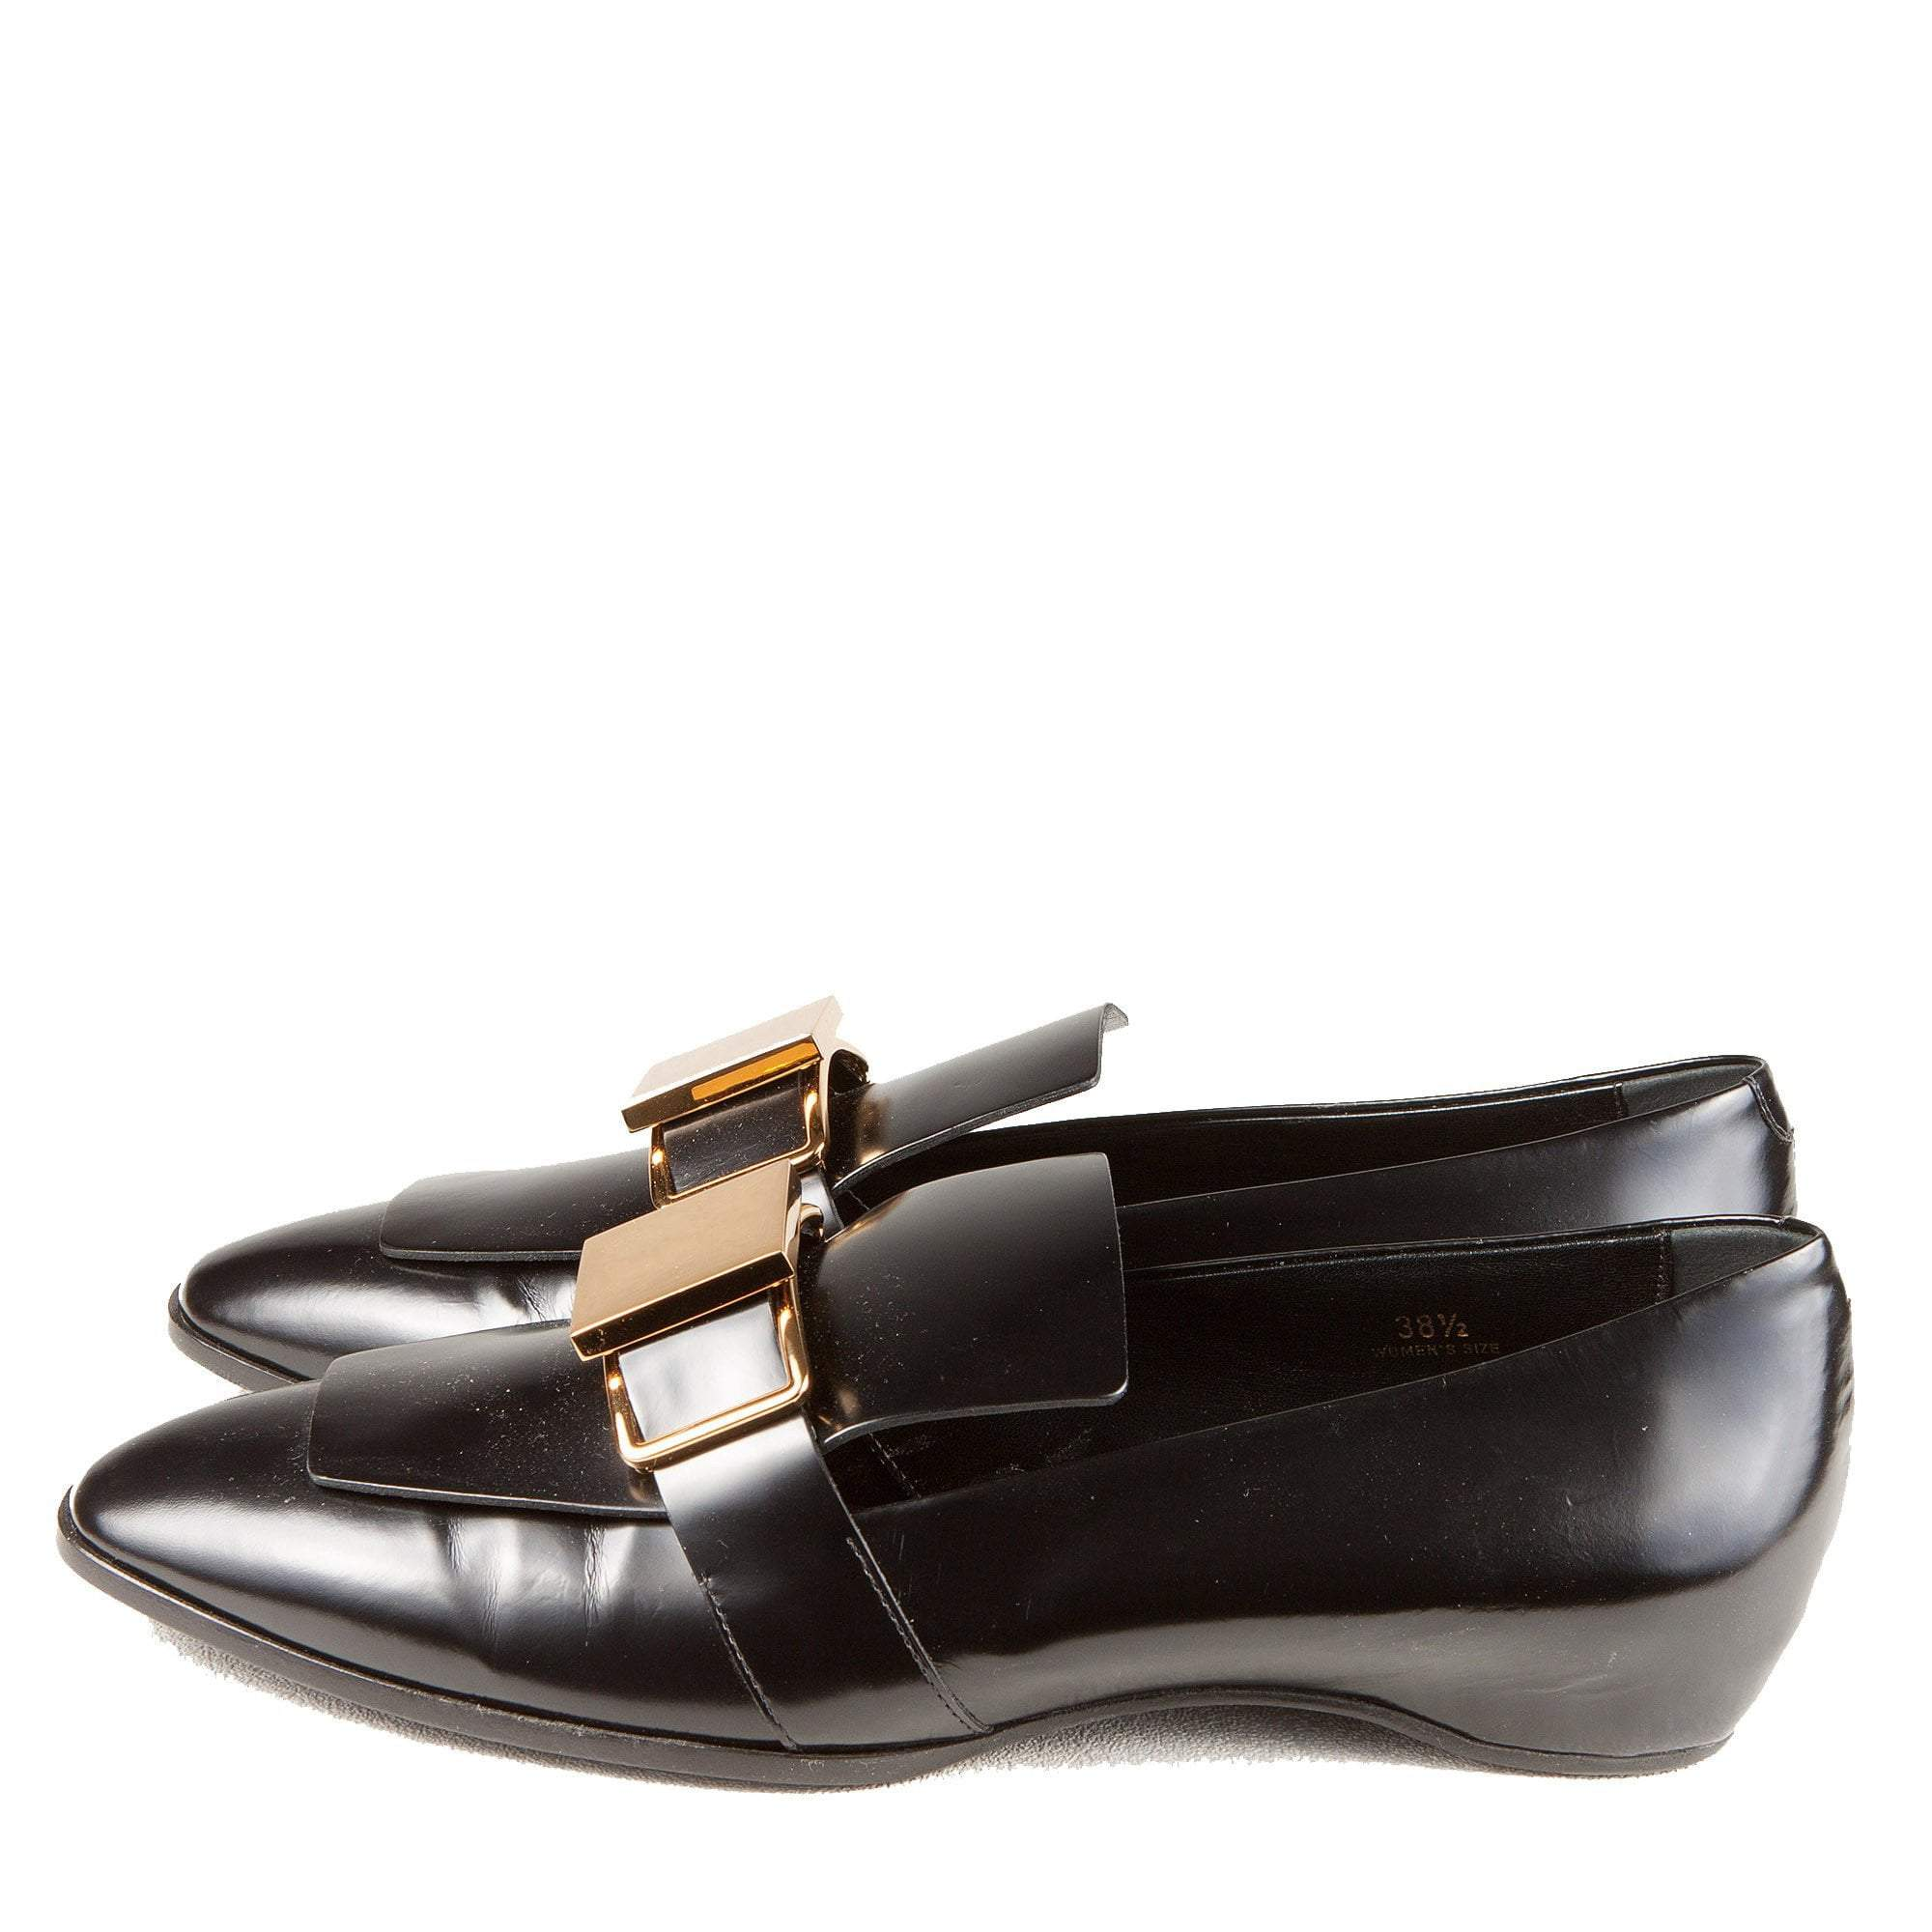 Tods Black Loafers with Gold Buckle